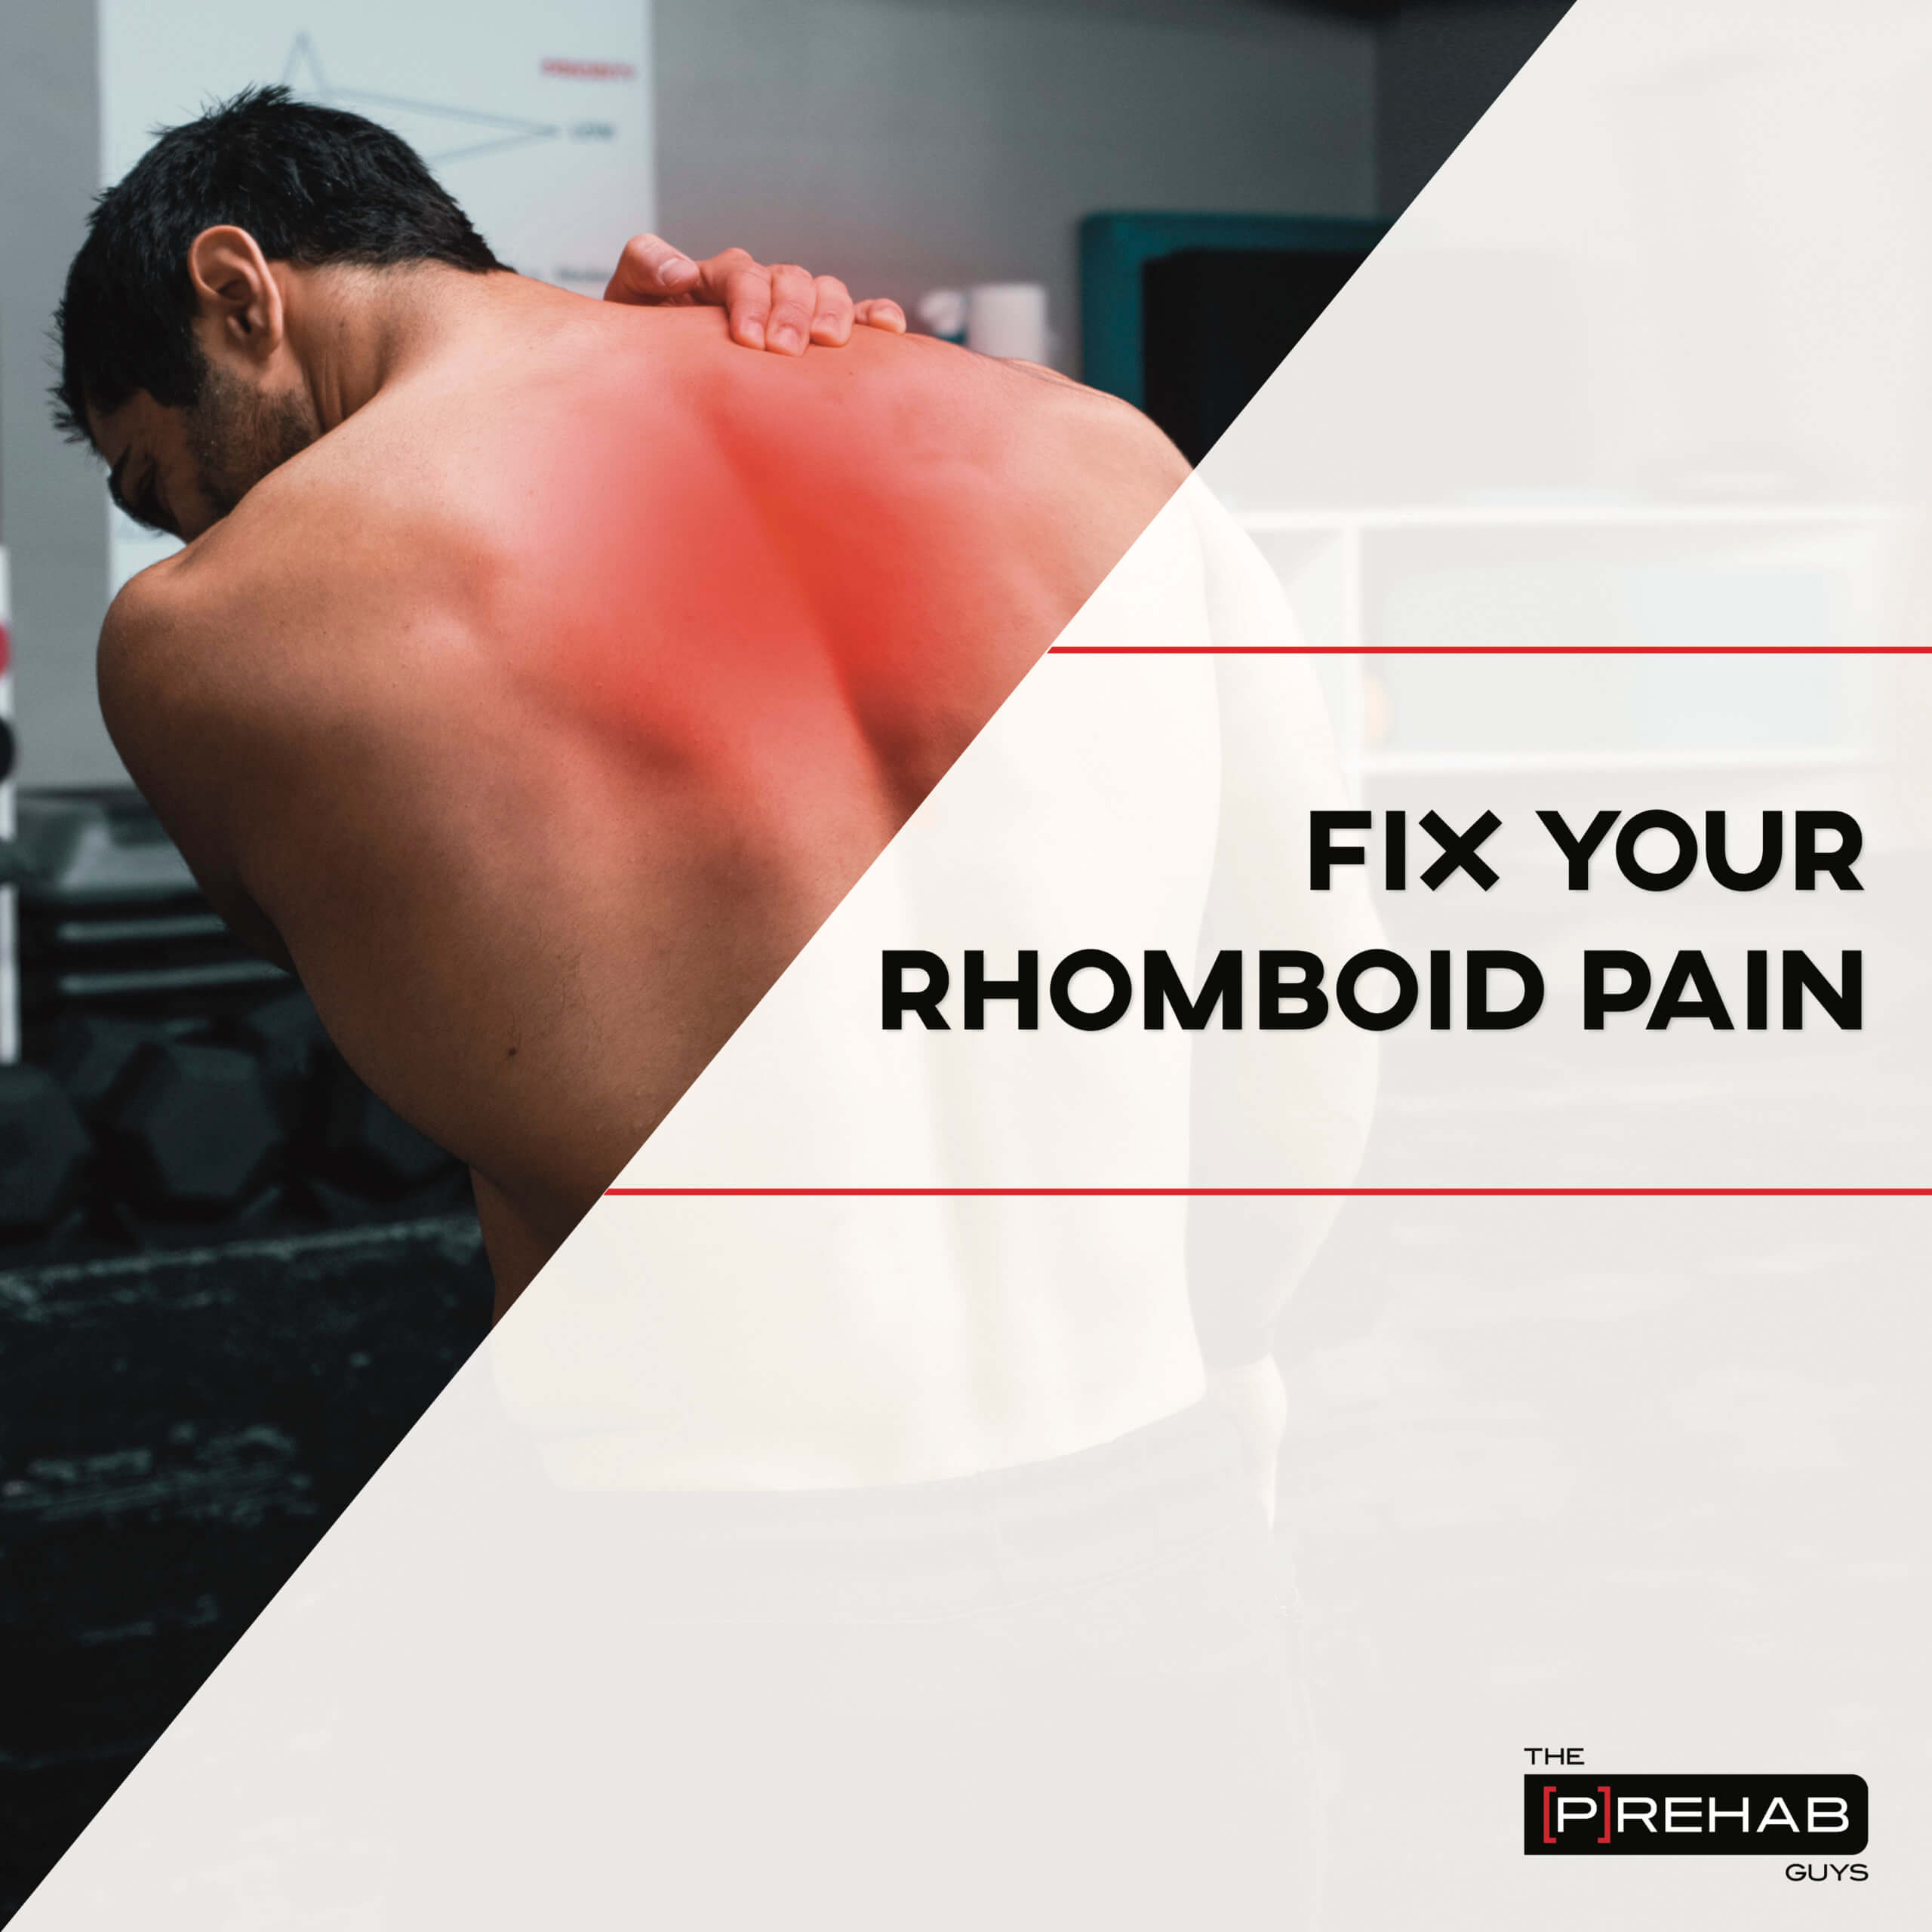 Fix Rhomboid Pain